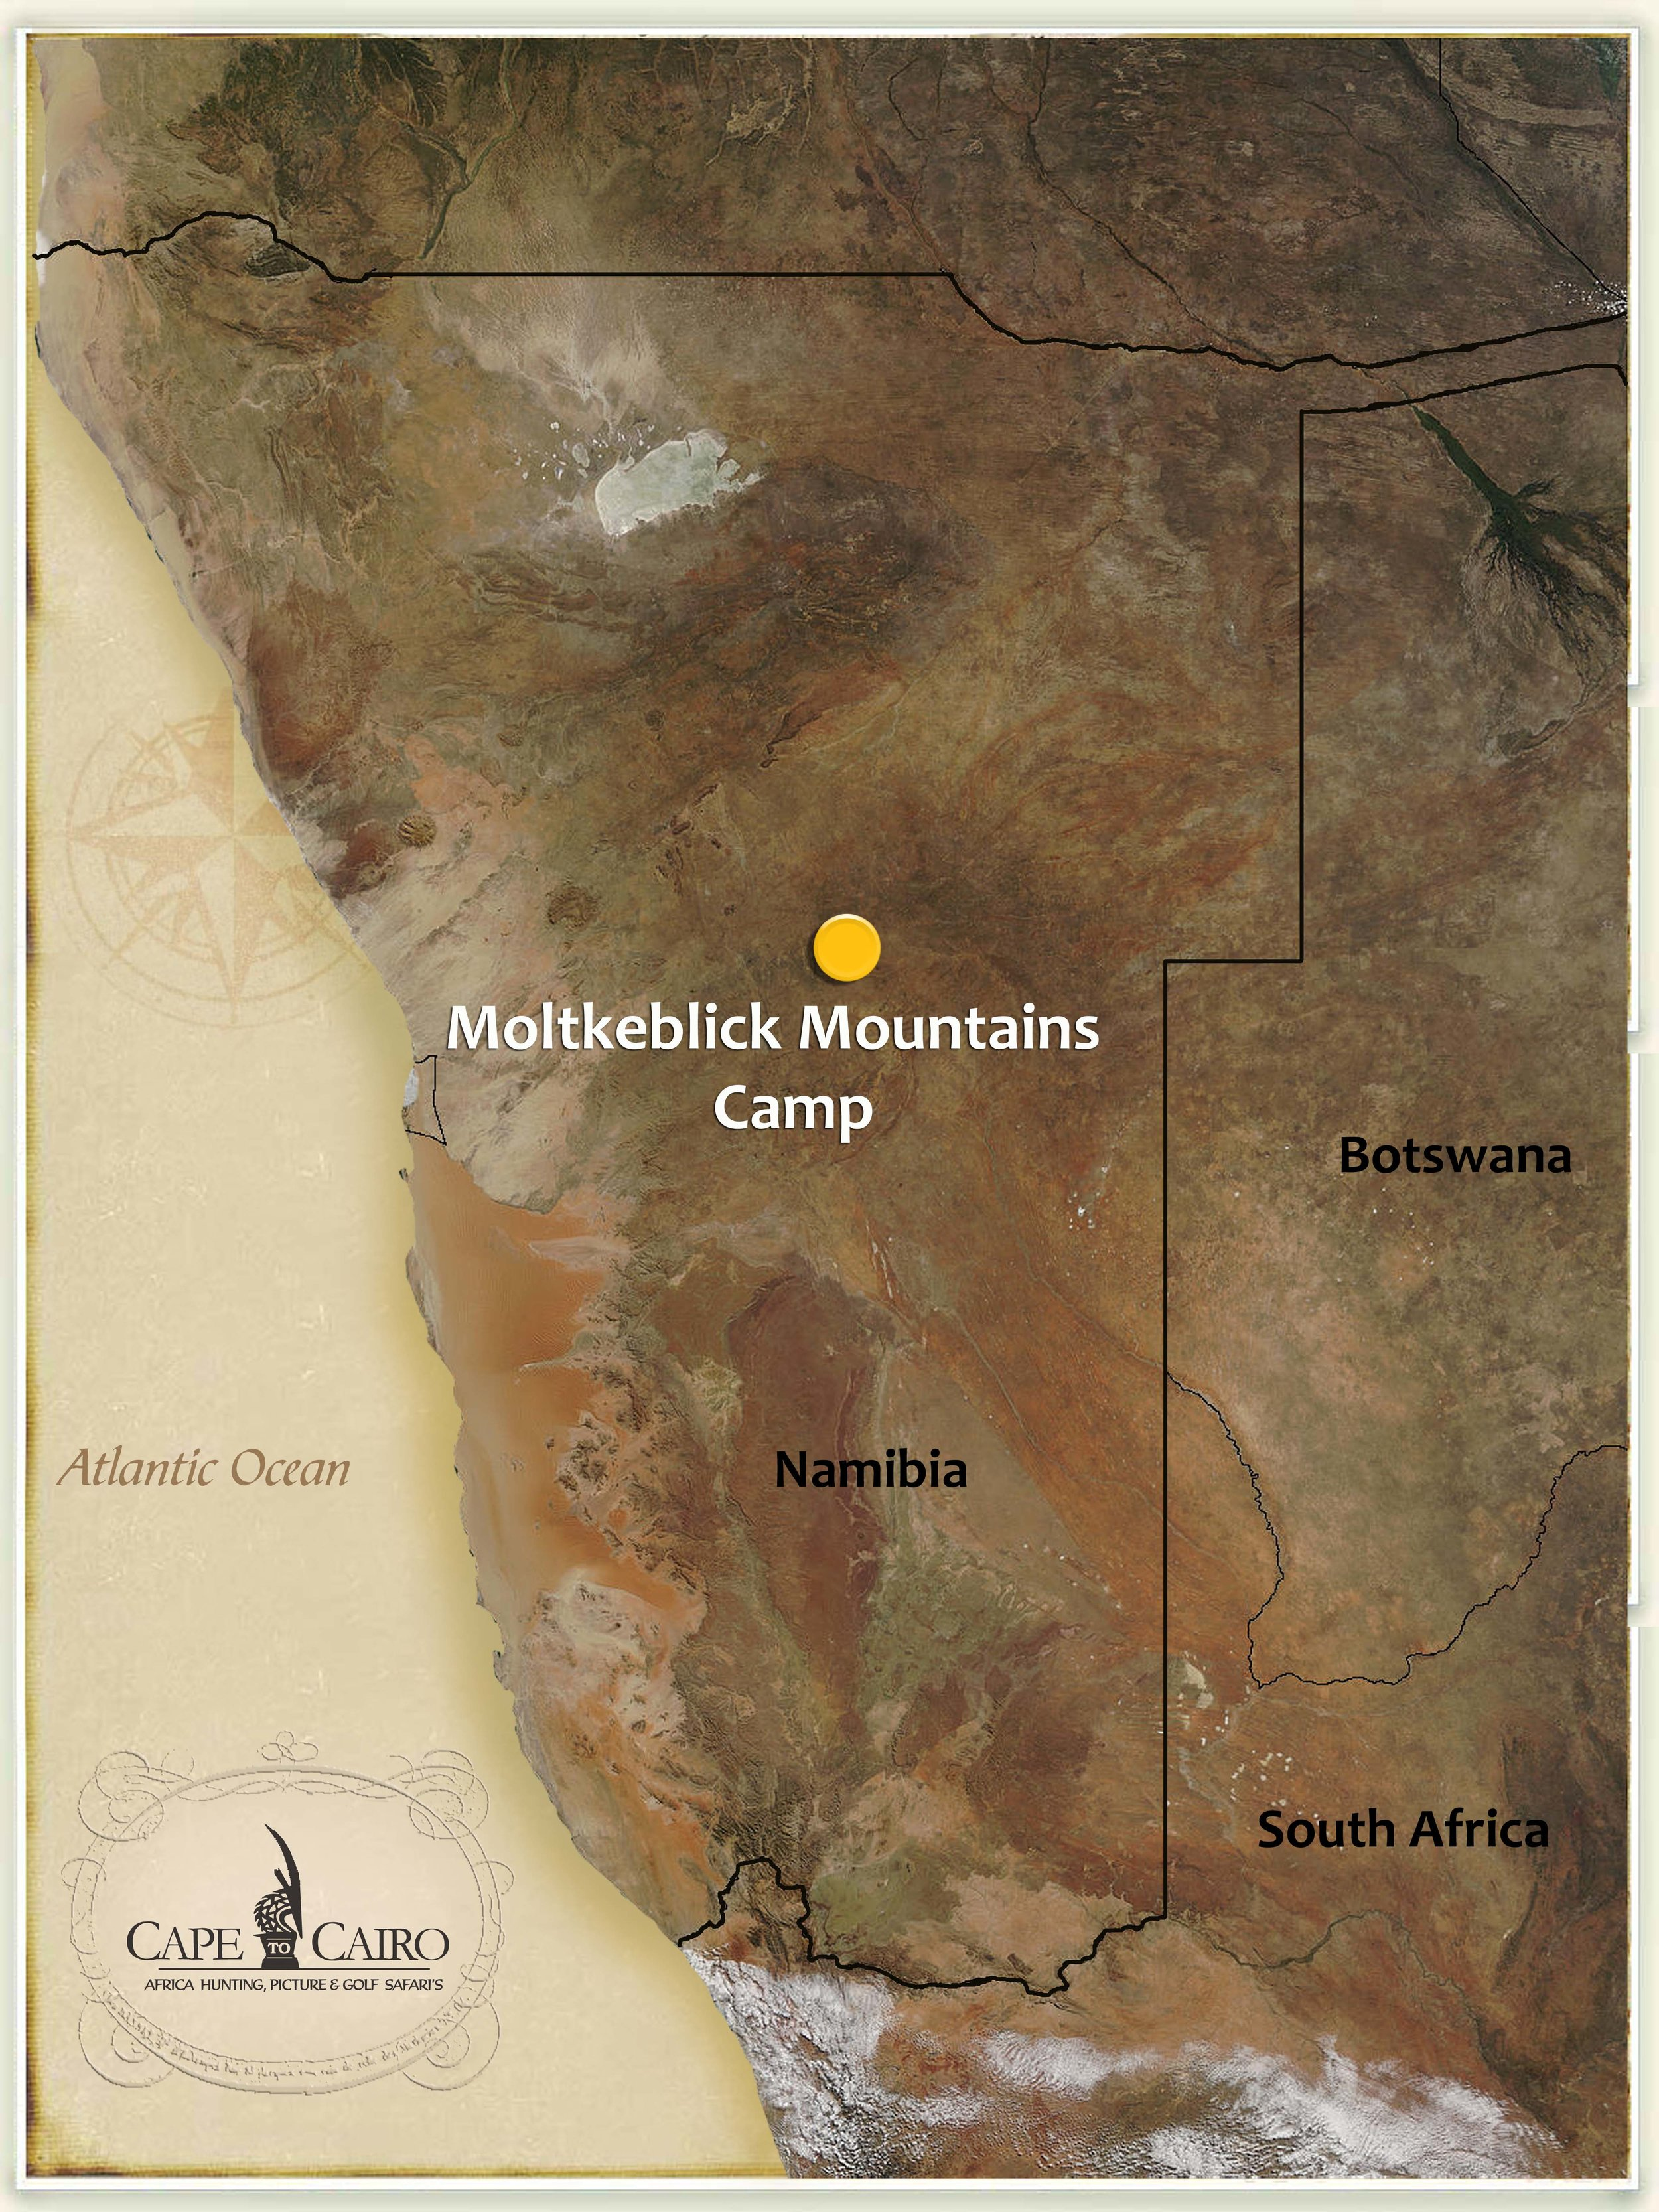 Location - The Moltkeblick Mountains Concession is situated in in the central region of Namibia, and located adjacent to Namibia's capital, Windhoek. Umongst these Moltkeblick rolling mountains lies a magnificent prime trophy hunting territory … a jewel to be discovered by the enthusiastic hunter! This concession covers a total are in excess of 53,000 acres and mountains stands at 8,136 feet above sea level, a landmark pointing the way to the start of an exciting adventure in Namibia!